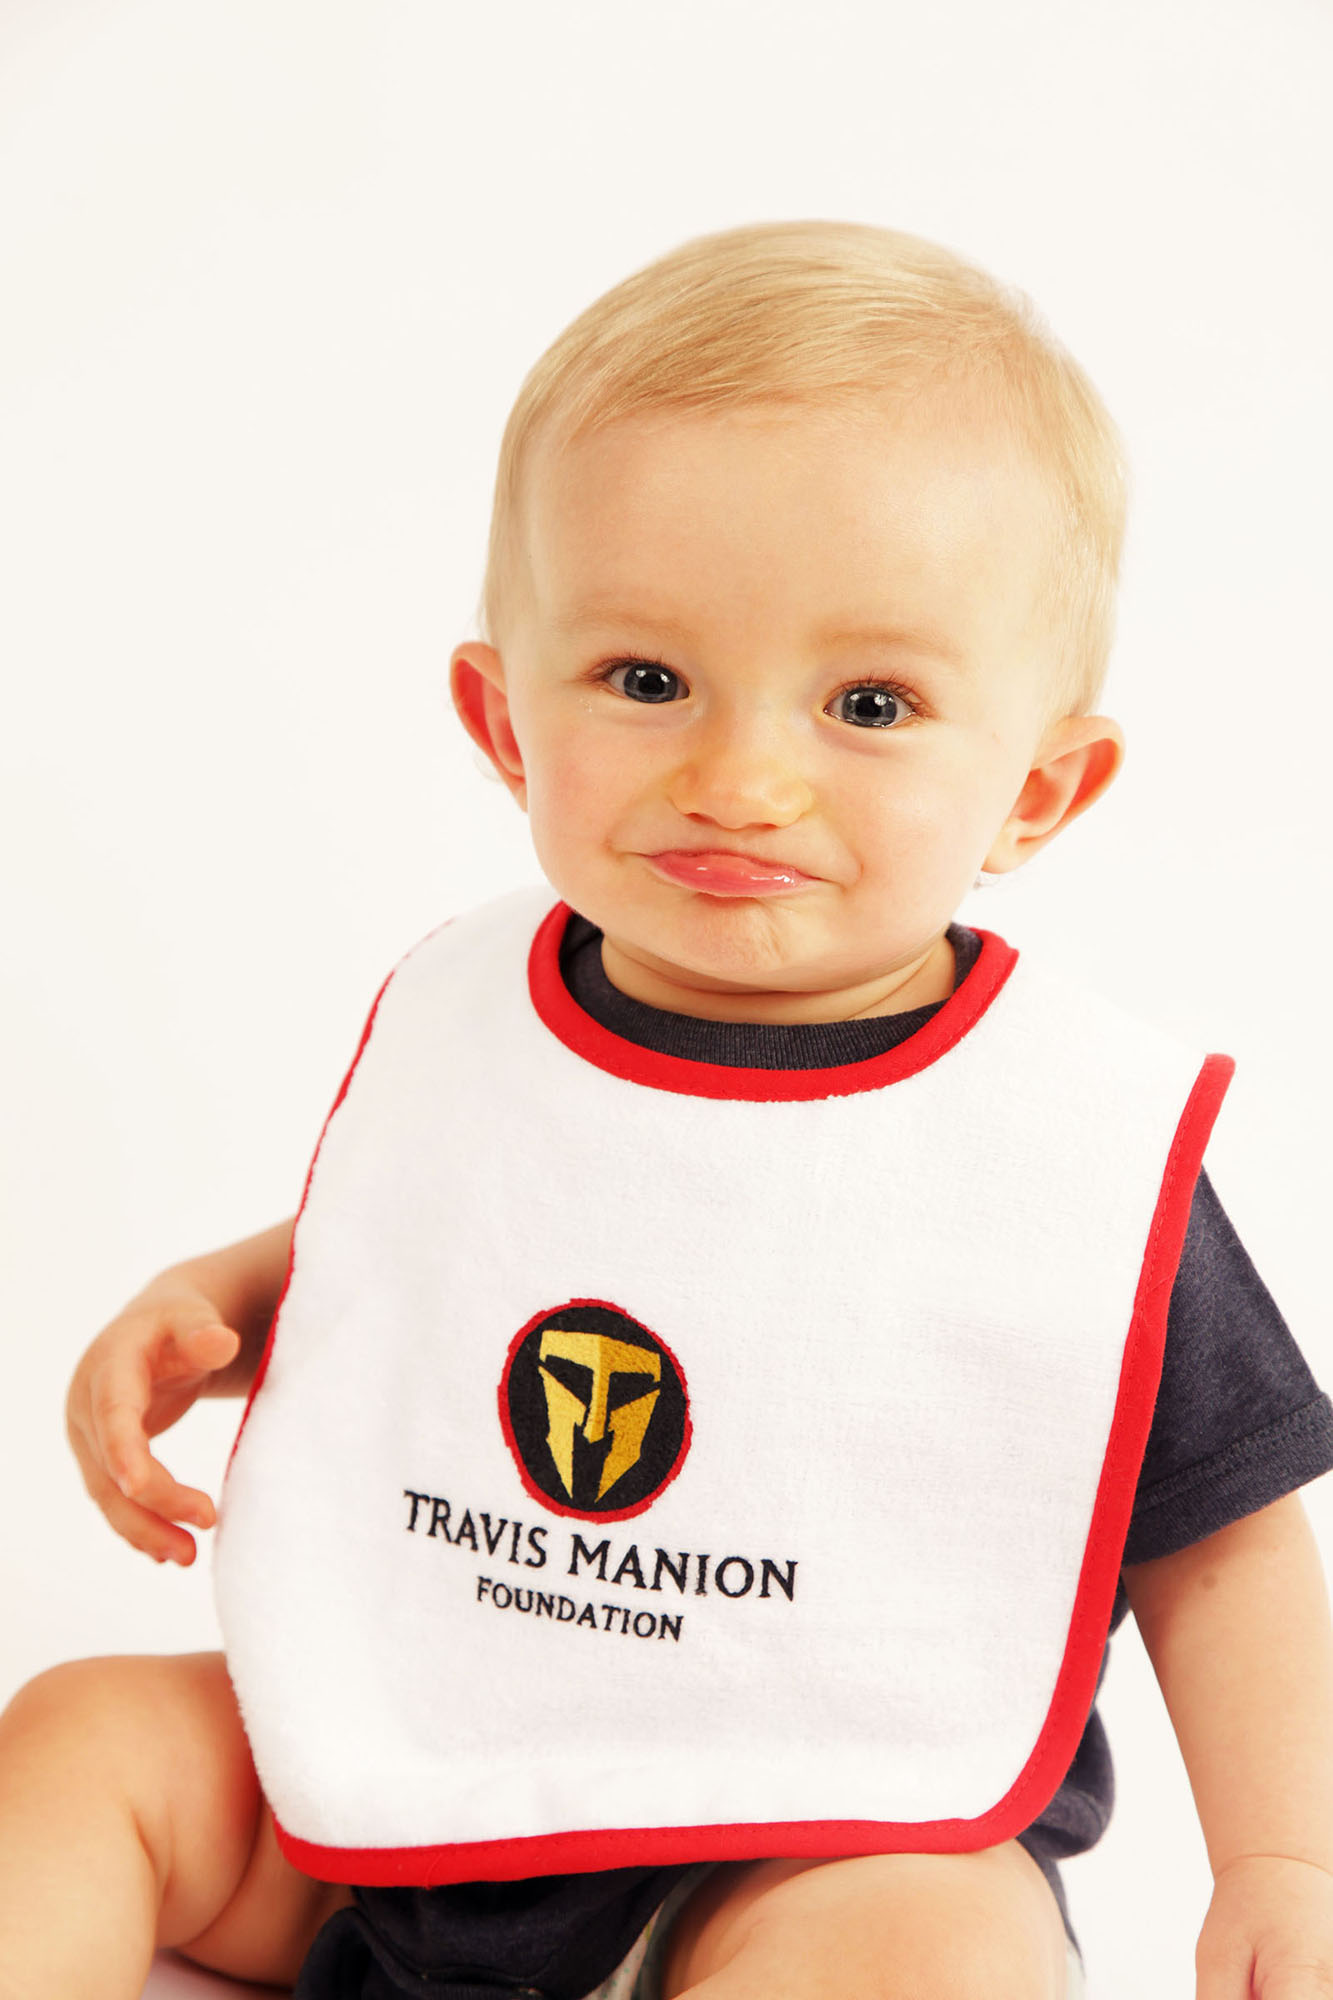 Travis Manion Foundation Infant Contrast Terry Bib